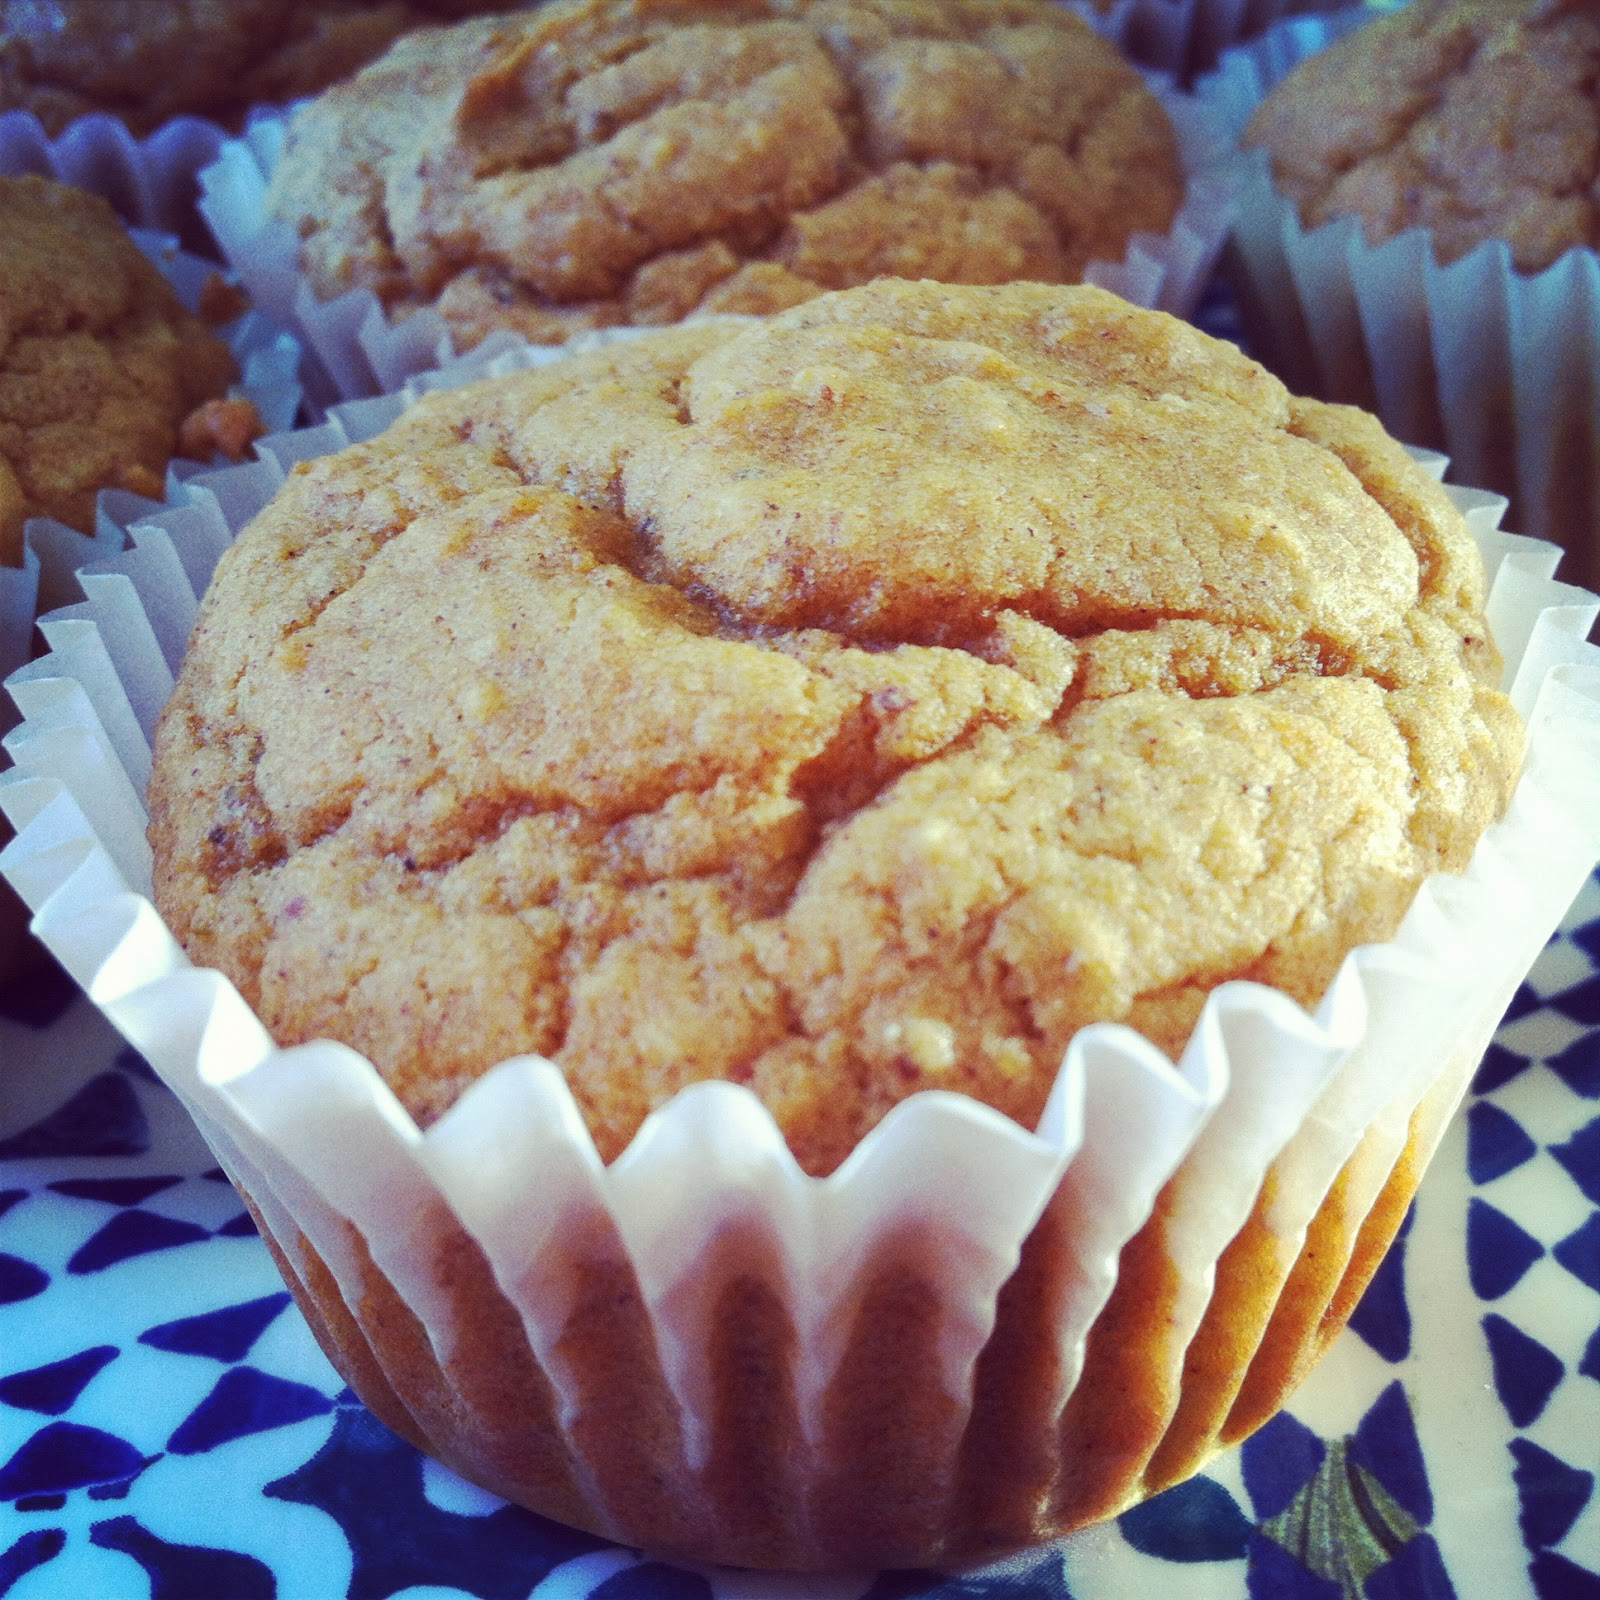 Gluten Free For All: Gluten-Free Pumpkin Muffins